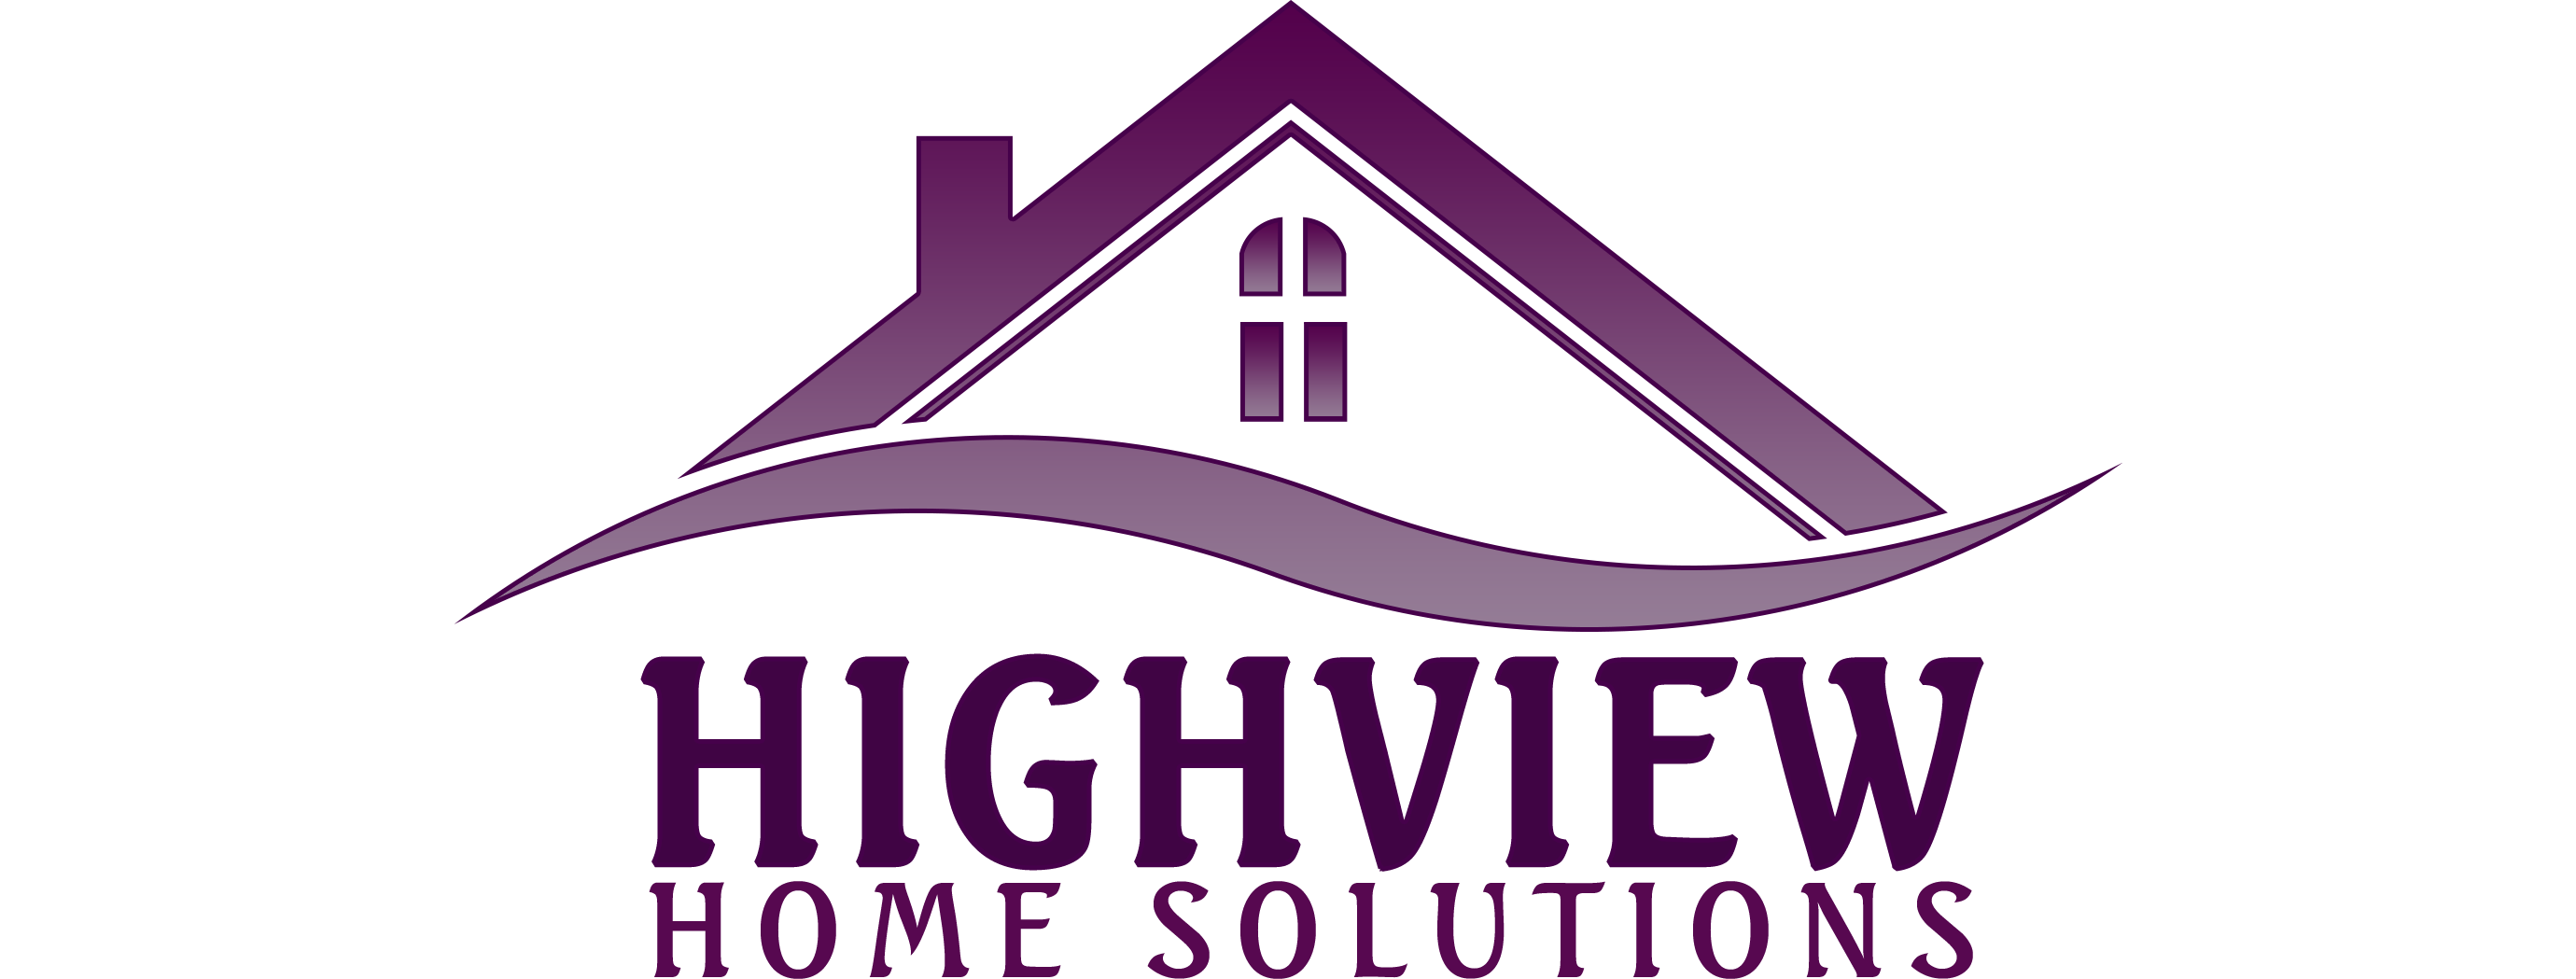 Highview Home Solutions